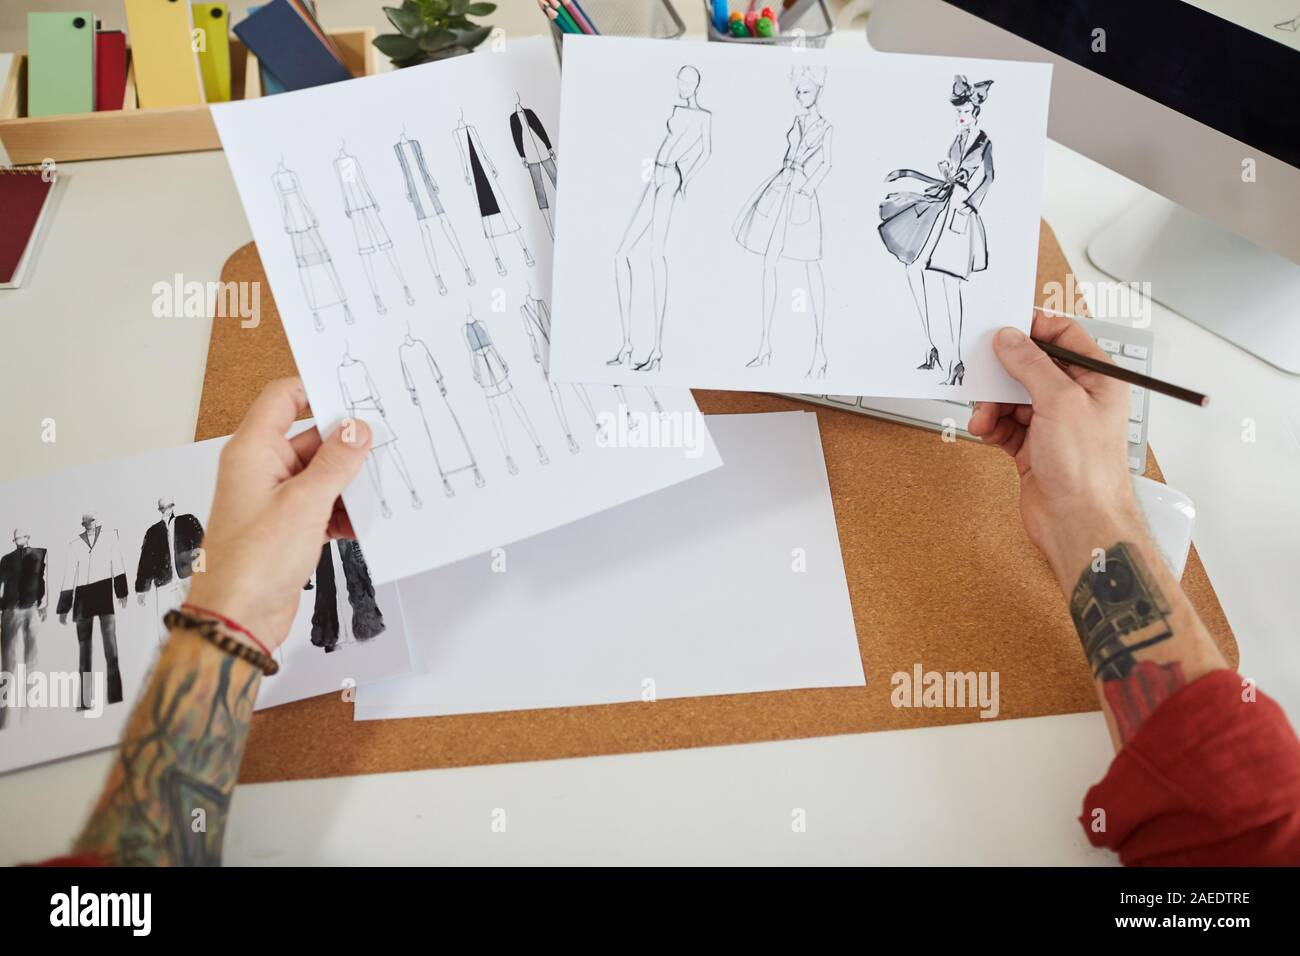 Close Up Of Tattooed Male Hands Holding Fashion Sketches Over Workplace In Design Studio Copy Space Stock Photo Alamy